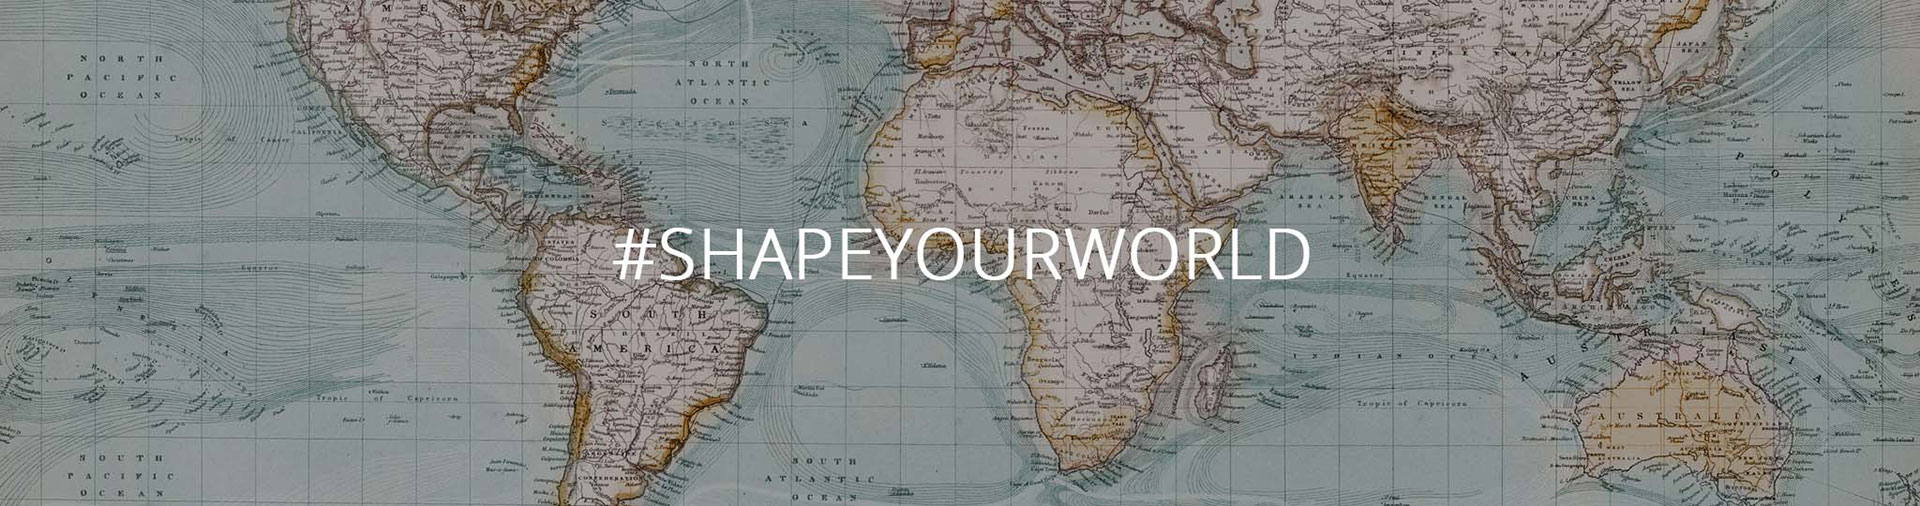 shape-your-world